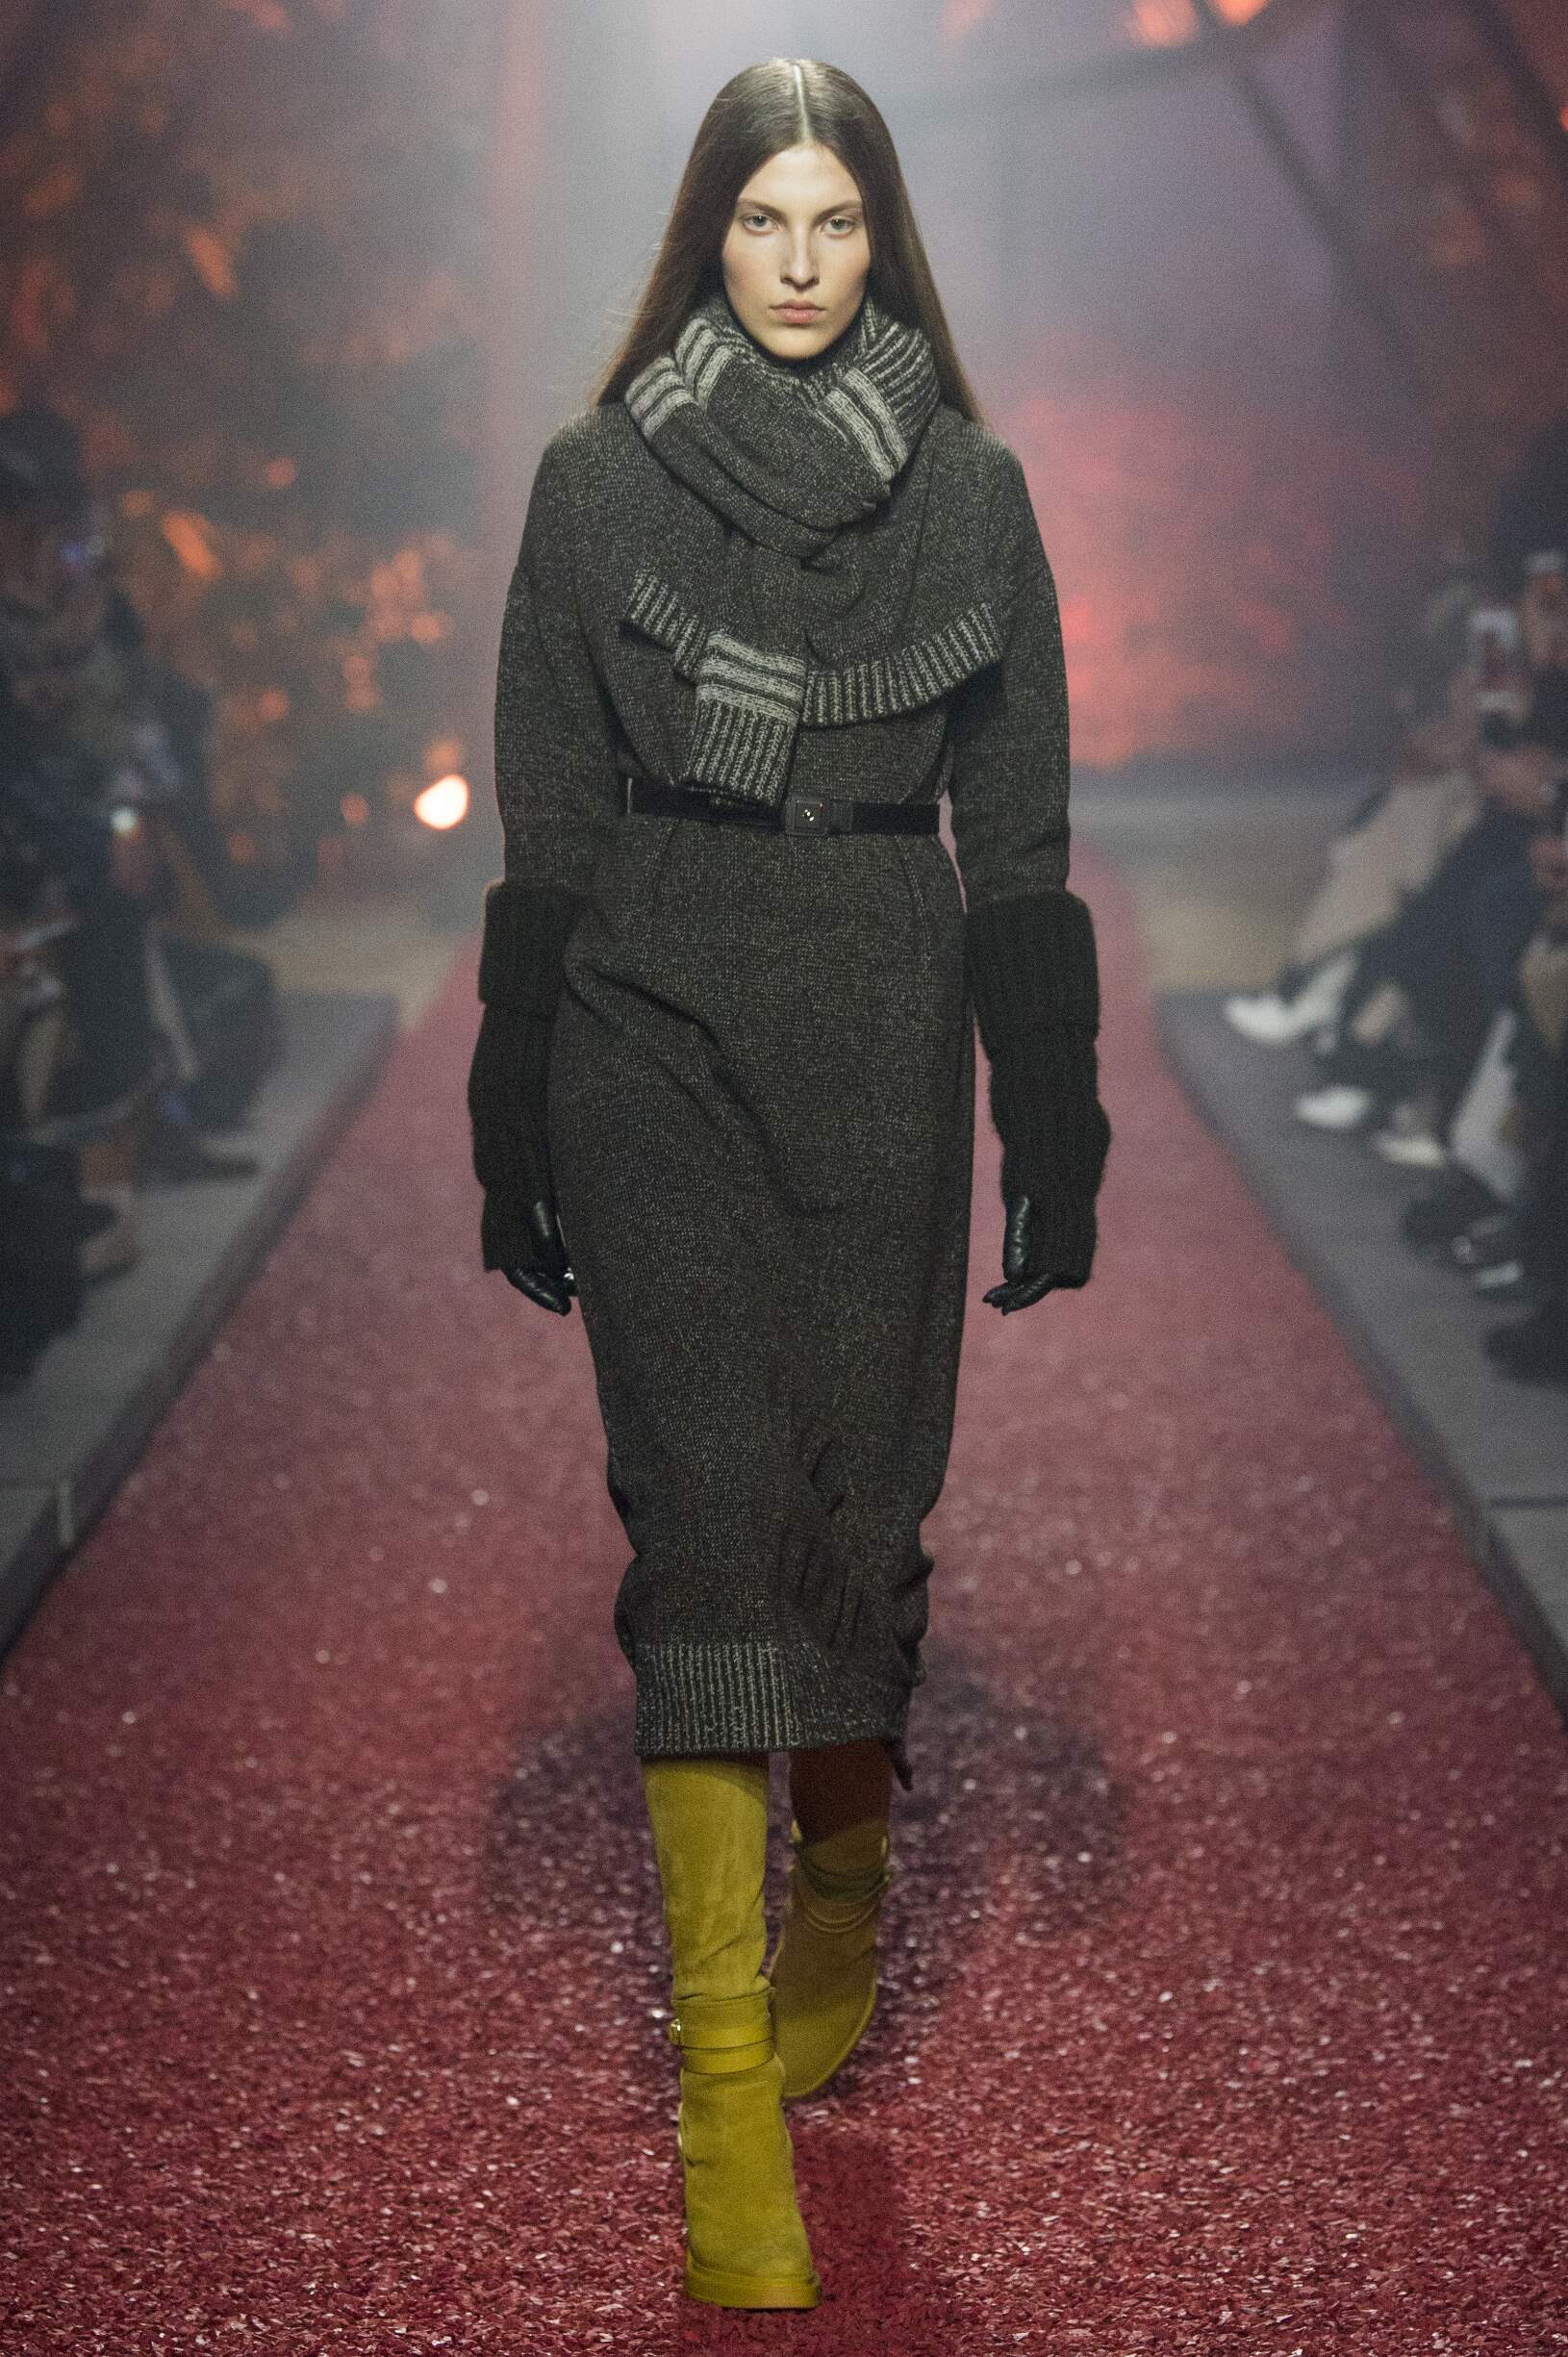 HERMÈS FALL WINTER 2018 WOMEN'S COLLECTION